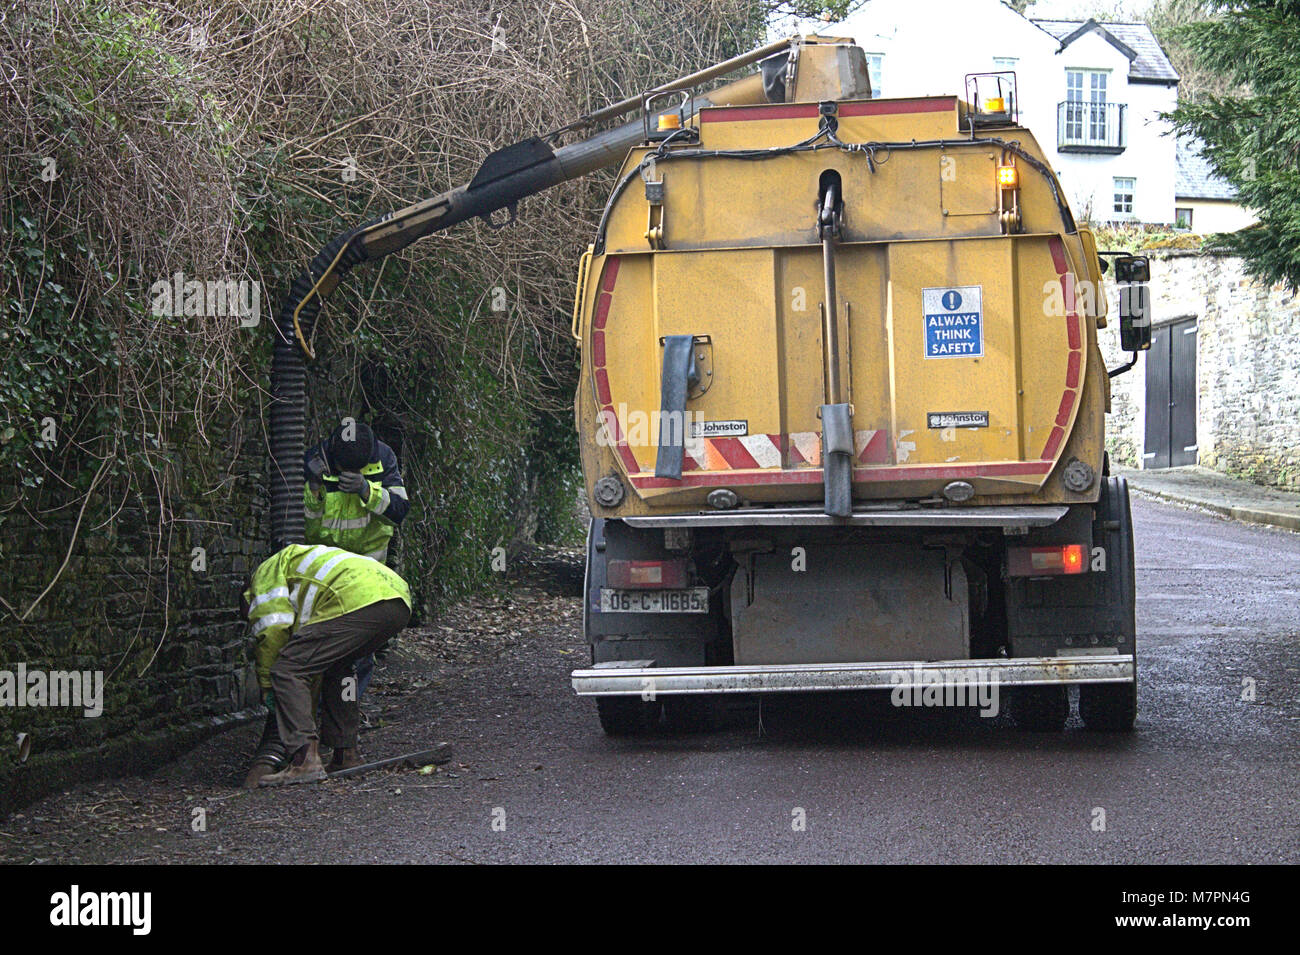 Waste Services Stockfotos & Waste Services Bilder - Alamy